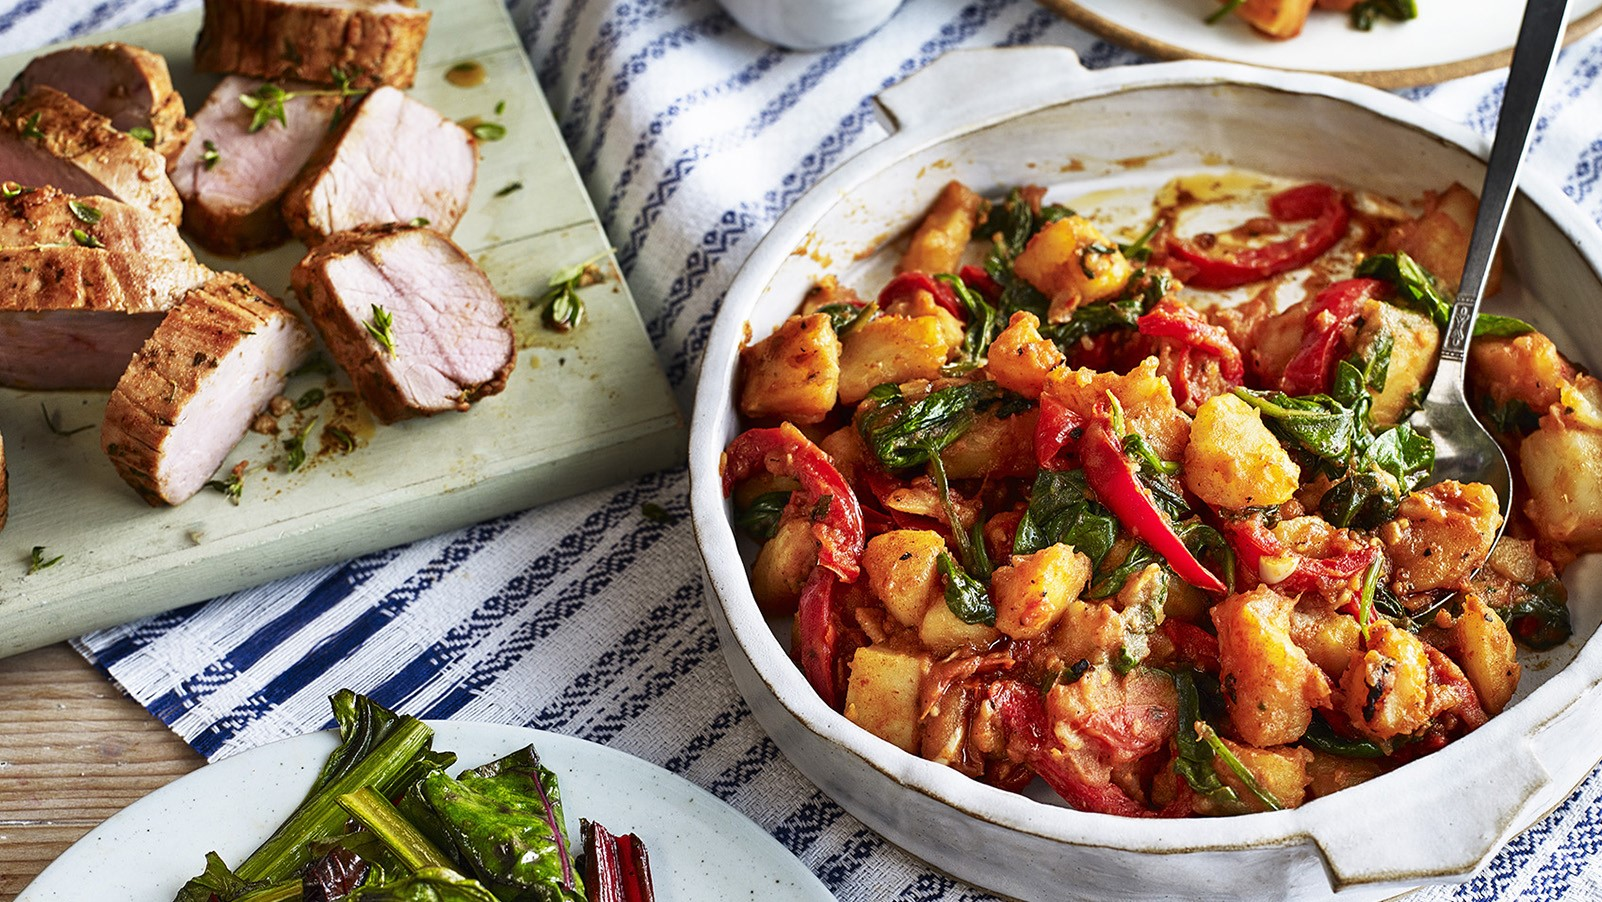 Spanish Flamenco potatoes with pork roast